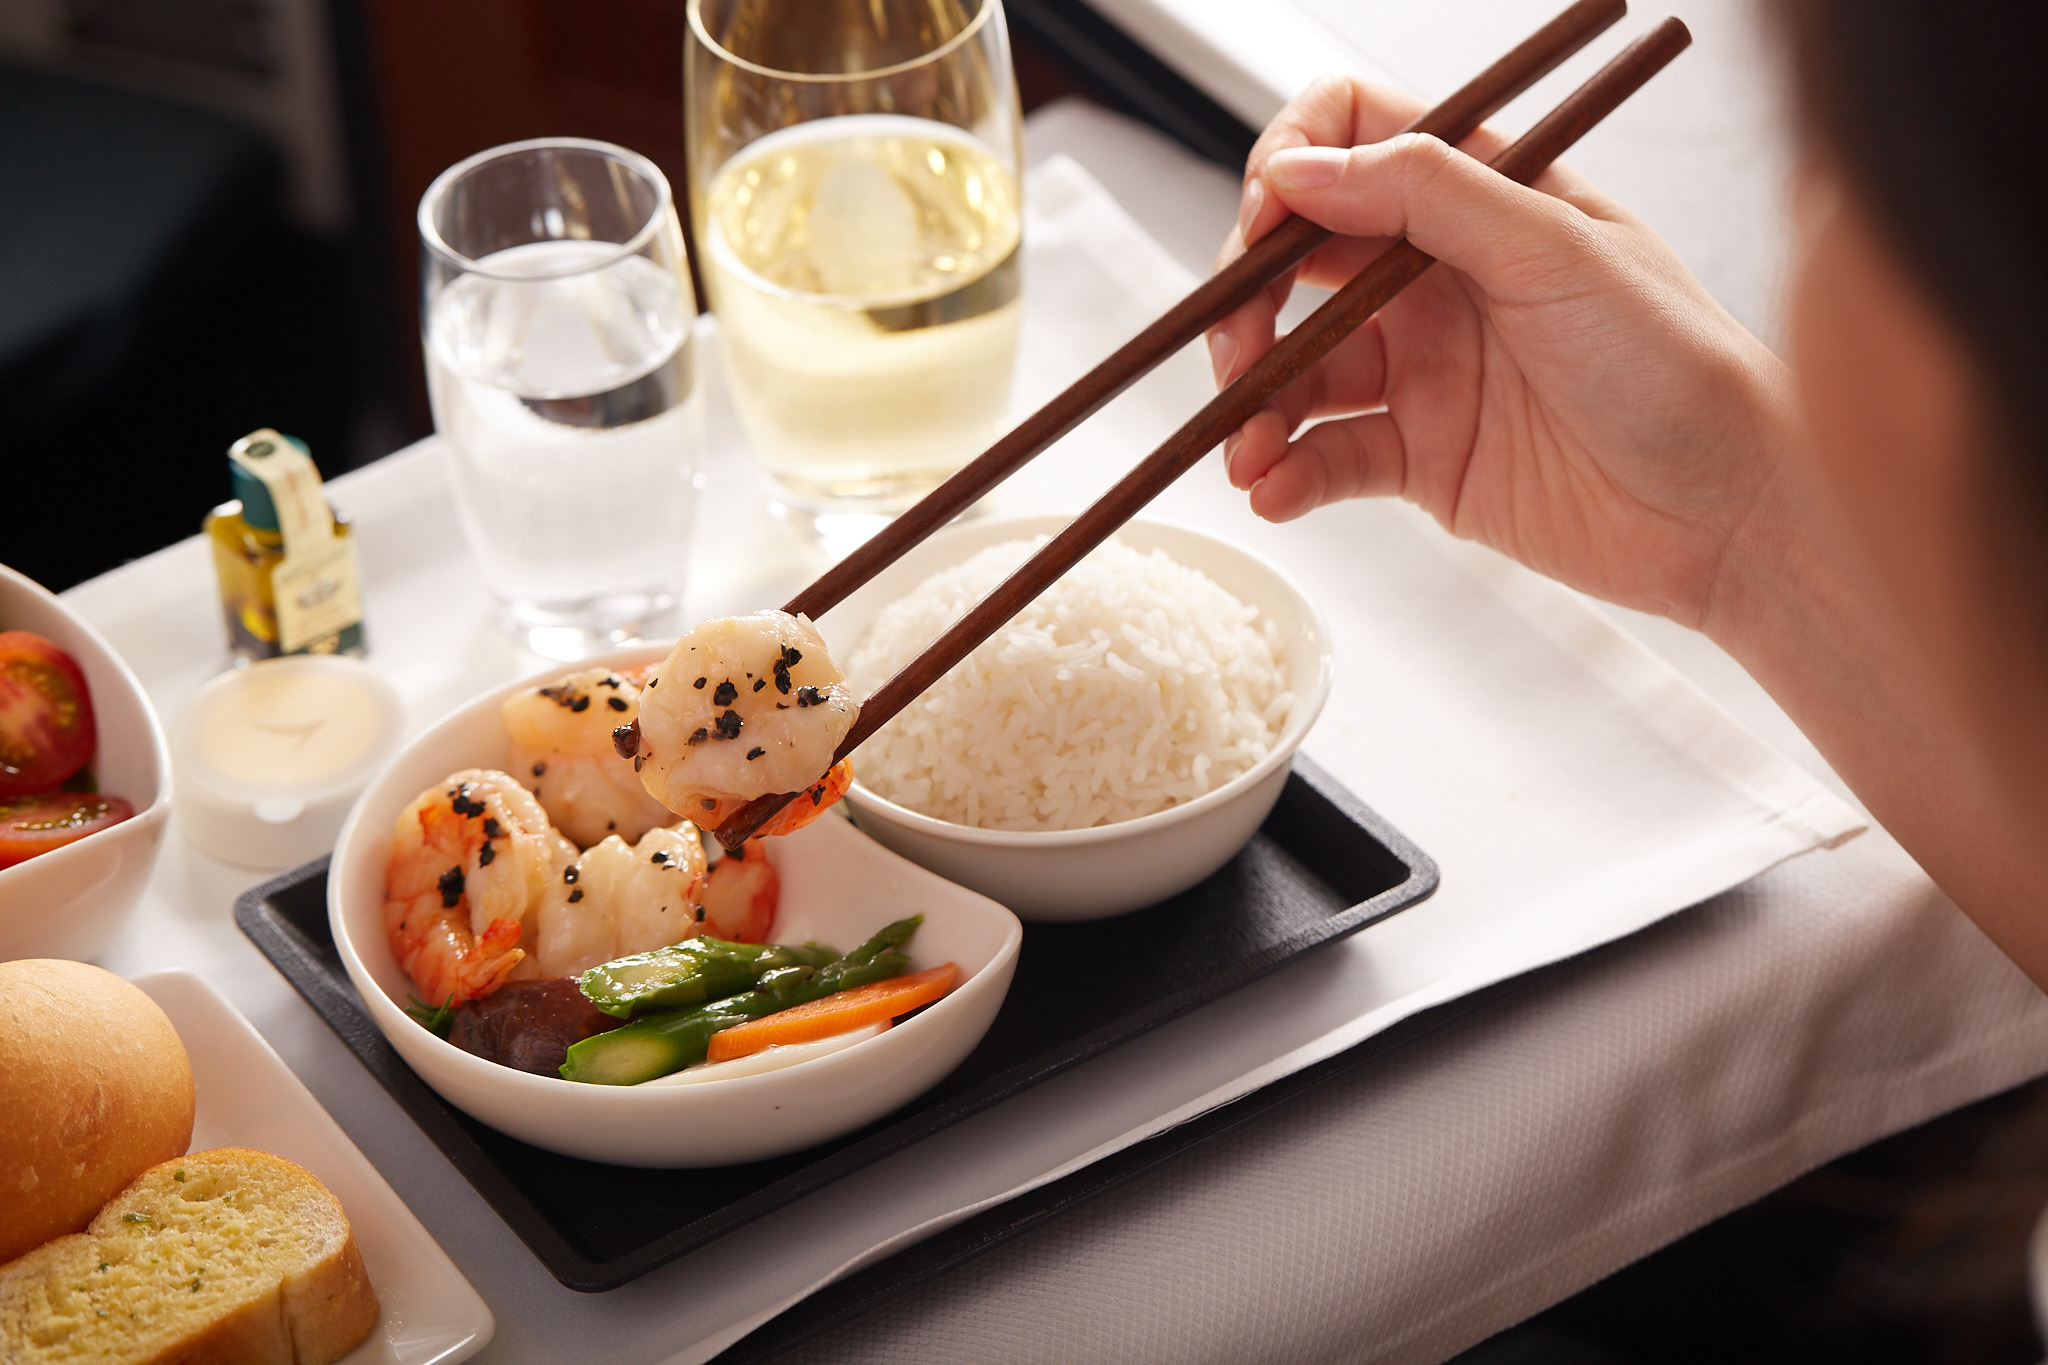 Cathay Pacific Partners With Mott 32 To Offer Contemporary Chinese